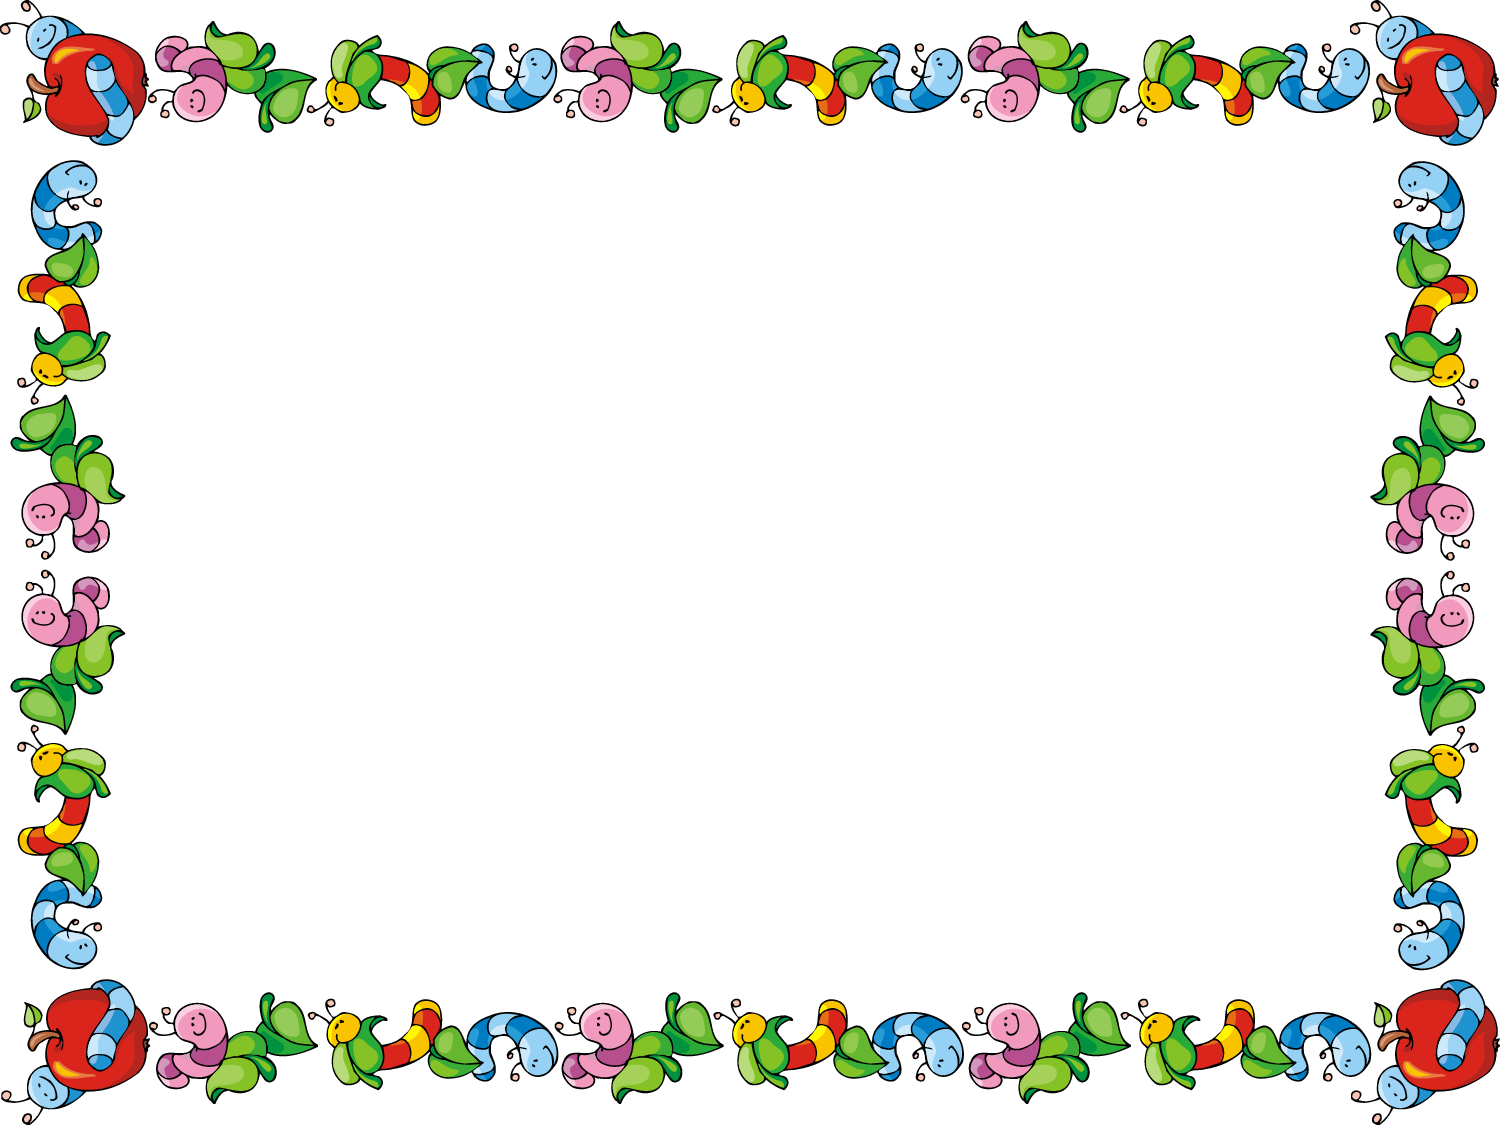 Free Powerpoint Template Apple And Worms Certificate Border